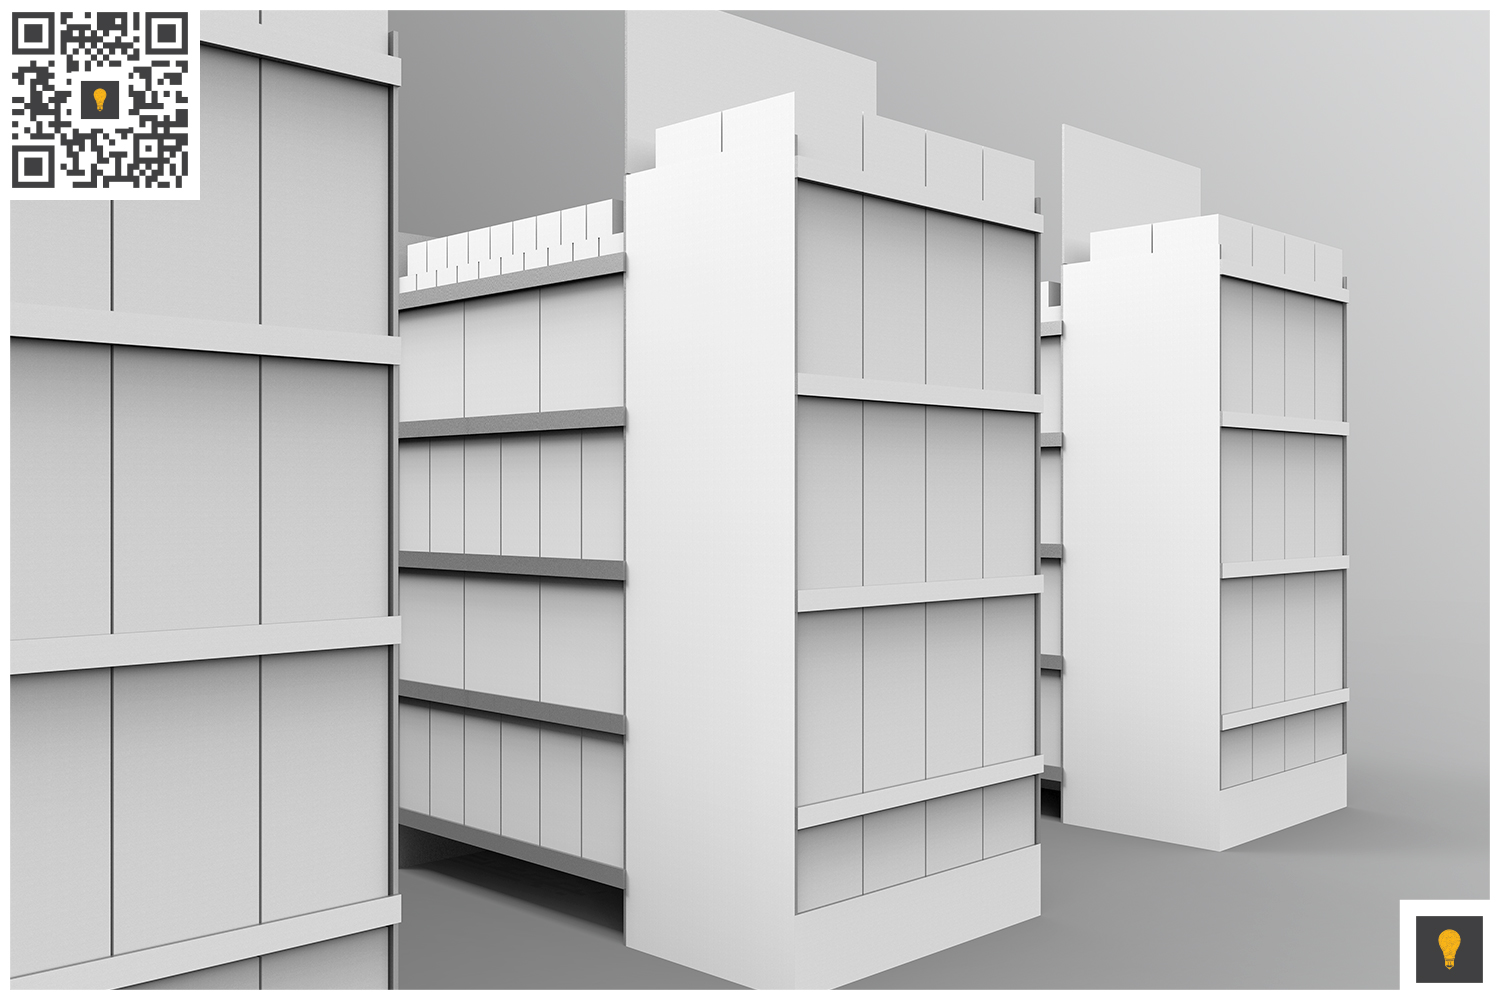 Aisle with Gondola Store 3D Render example image 7